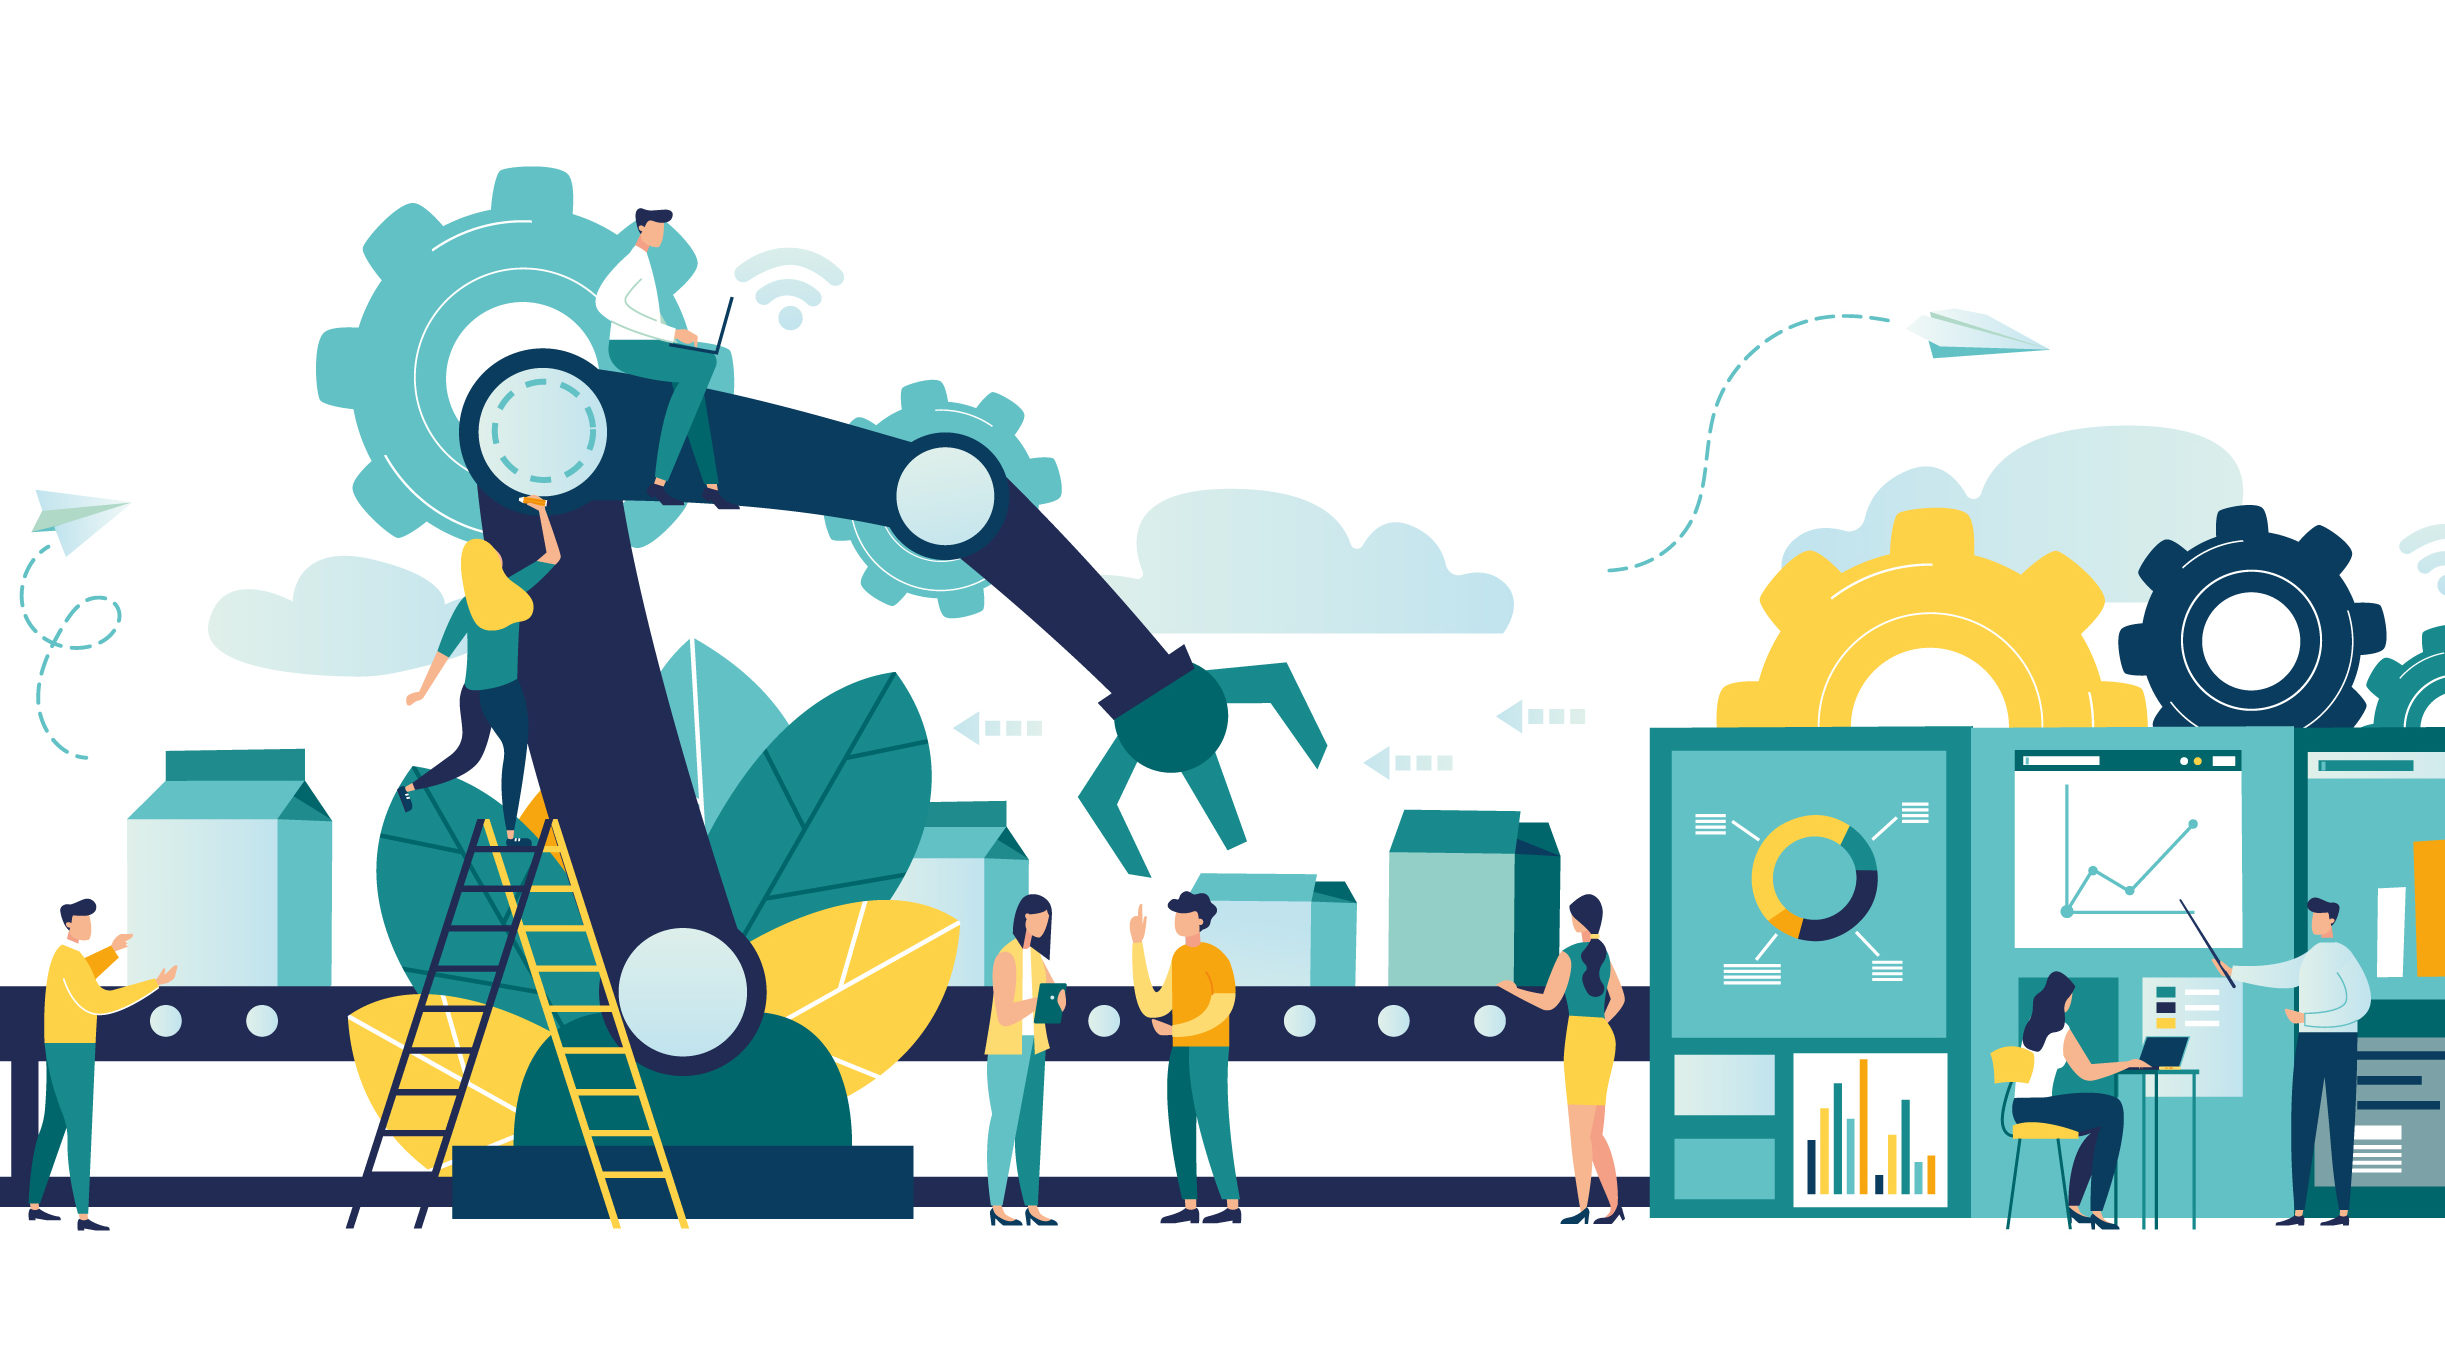 Vector illustration, a production line with workers, automation and user interface concept: user connecting with a tablet and sharing data with a cyber-physical system, Smart industry 4.0